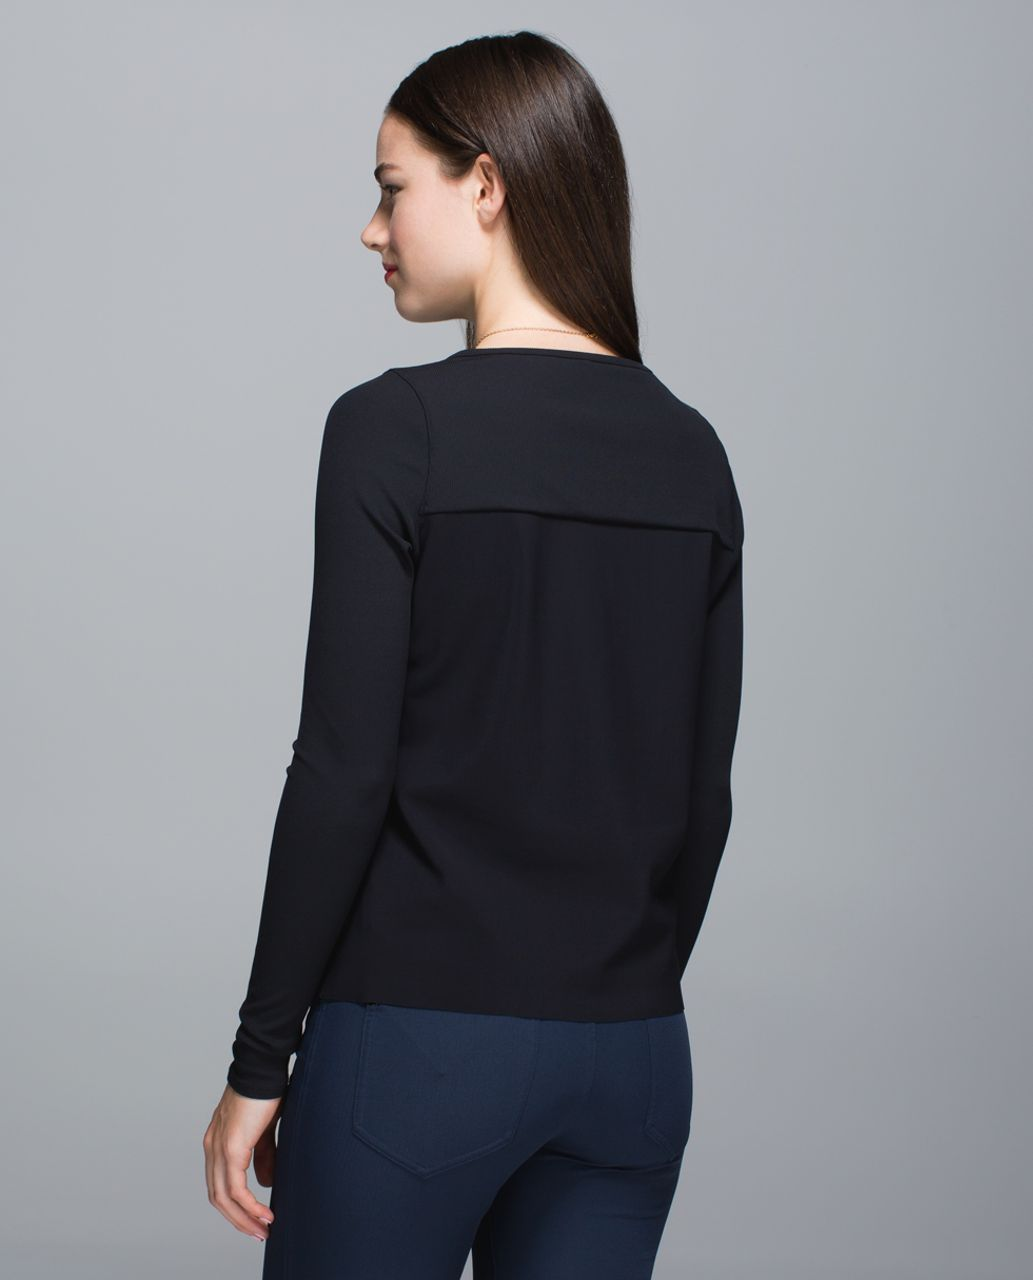 Lululemon Out Of This World Long Sleeve - Black